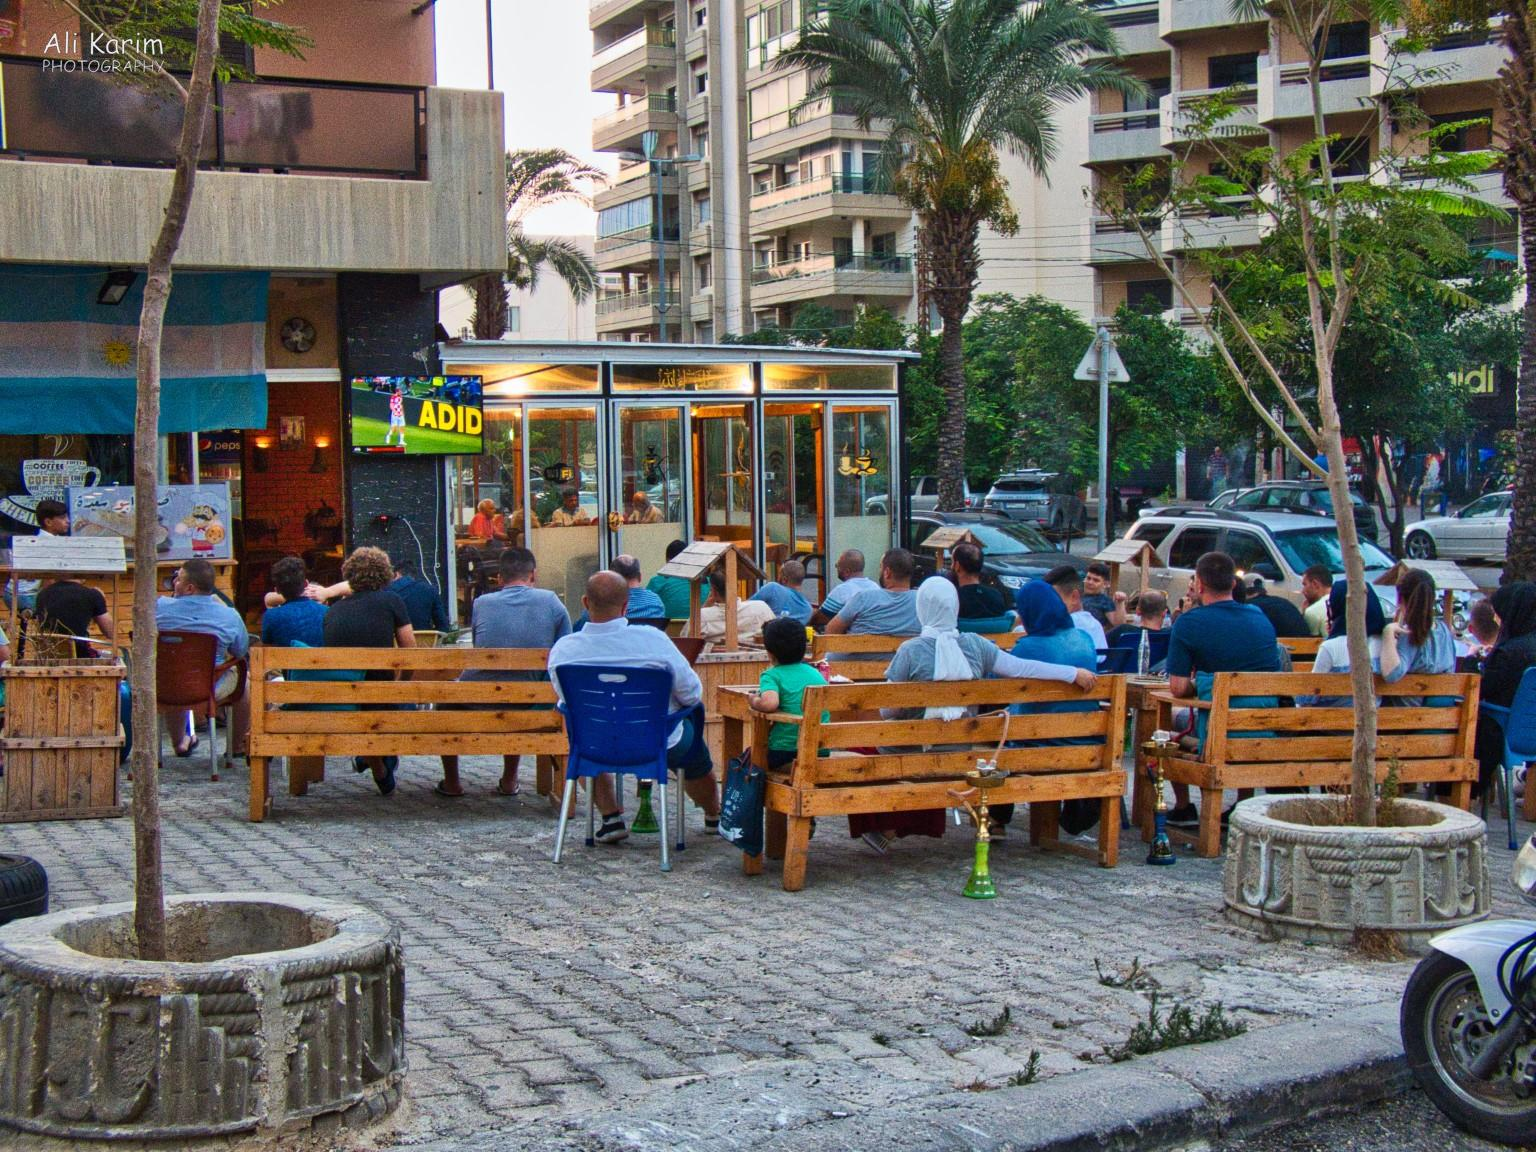 Beirut to Tripoli Screens outside restaurants where patrons could watch world cup soccer